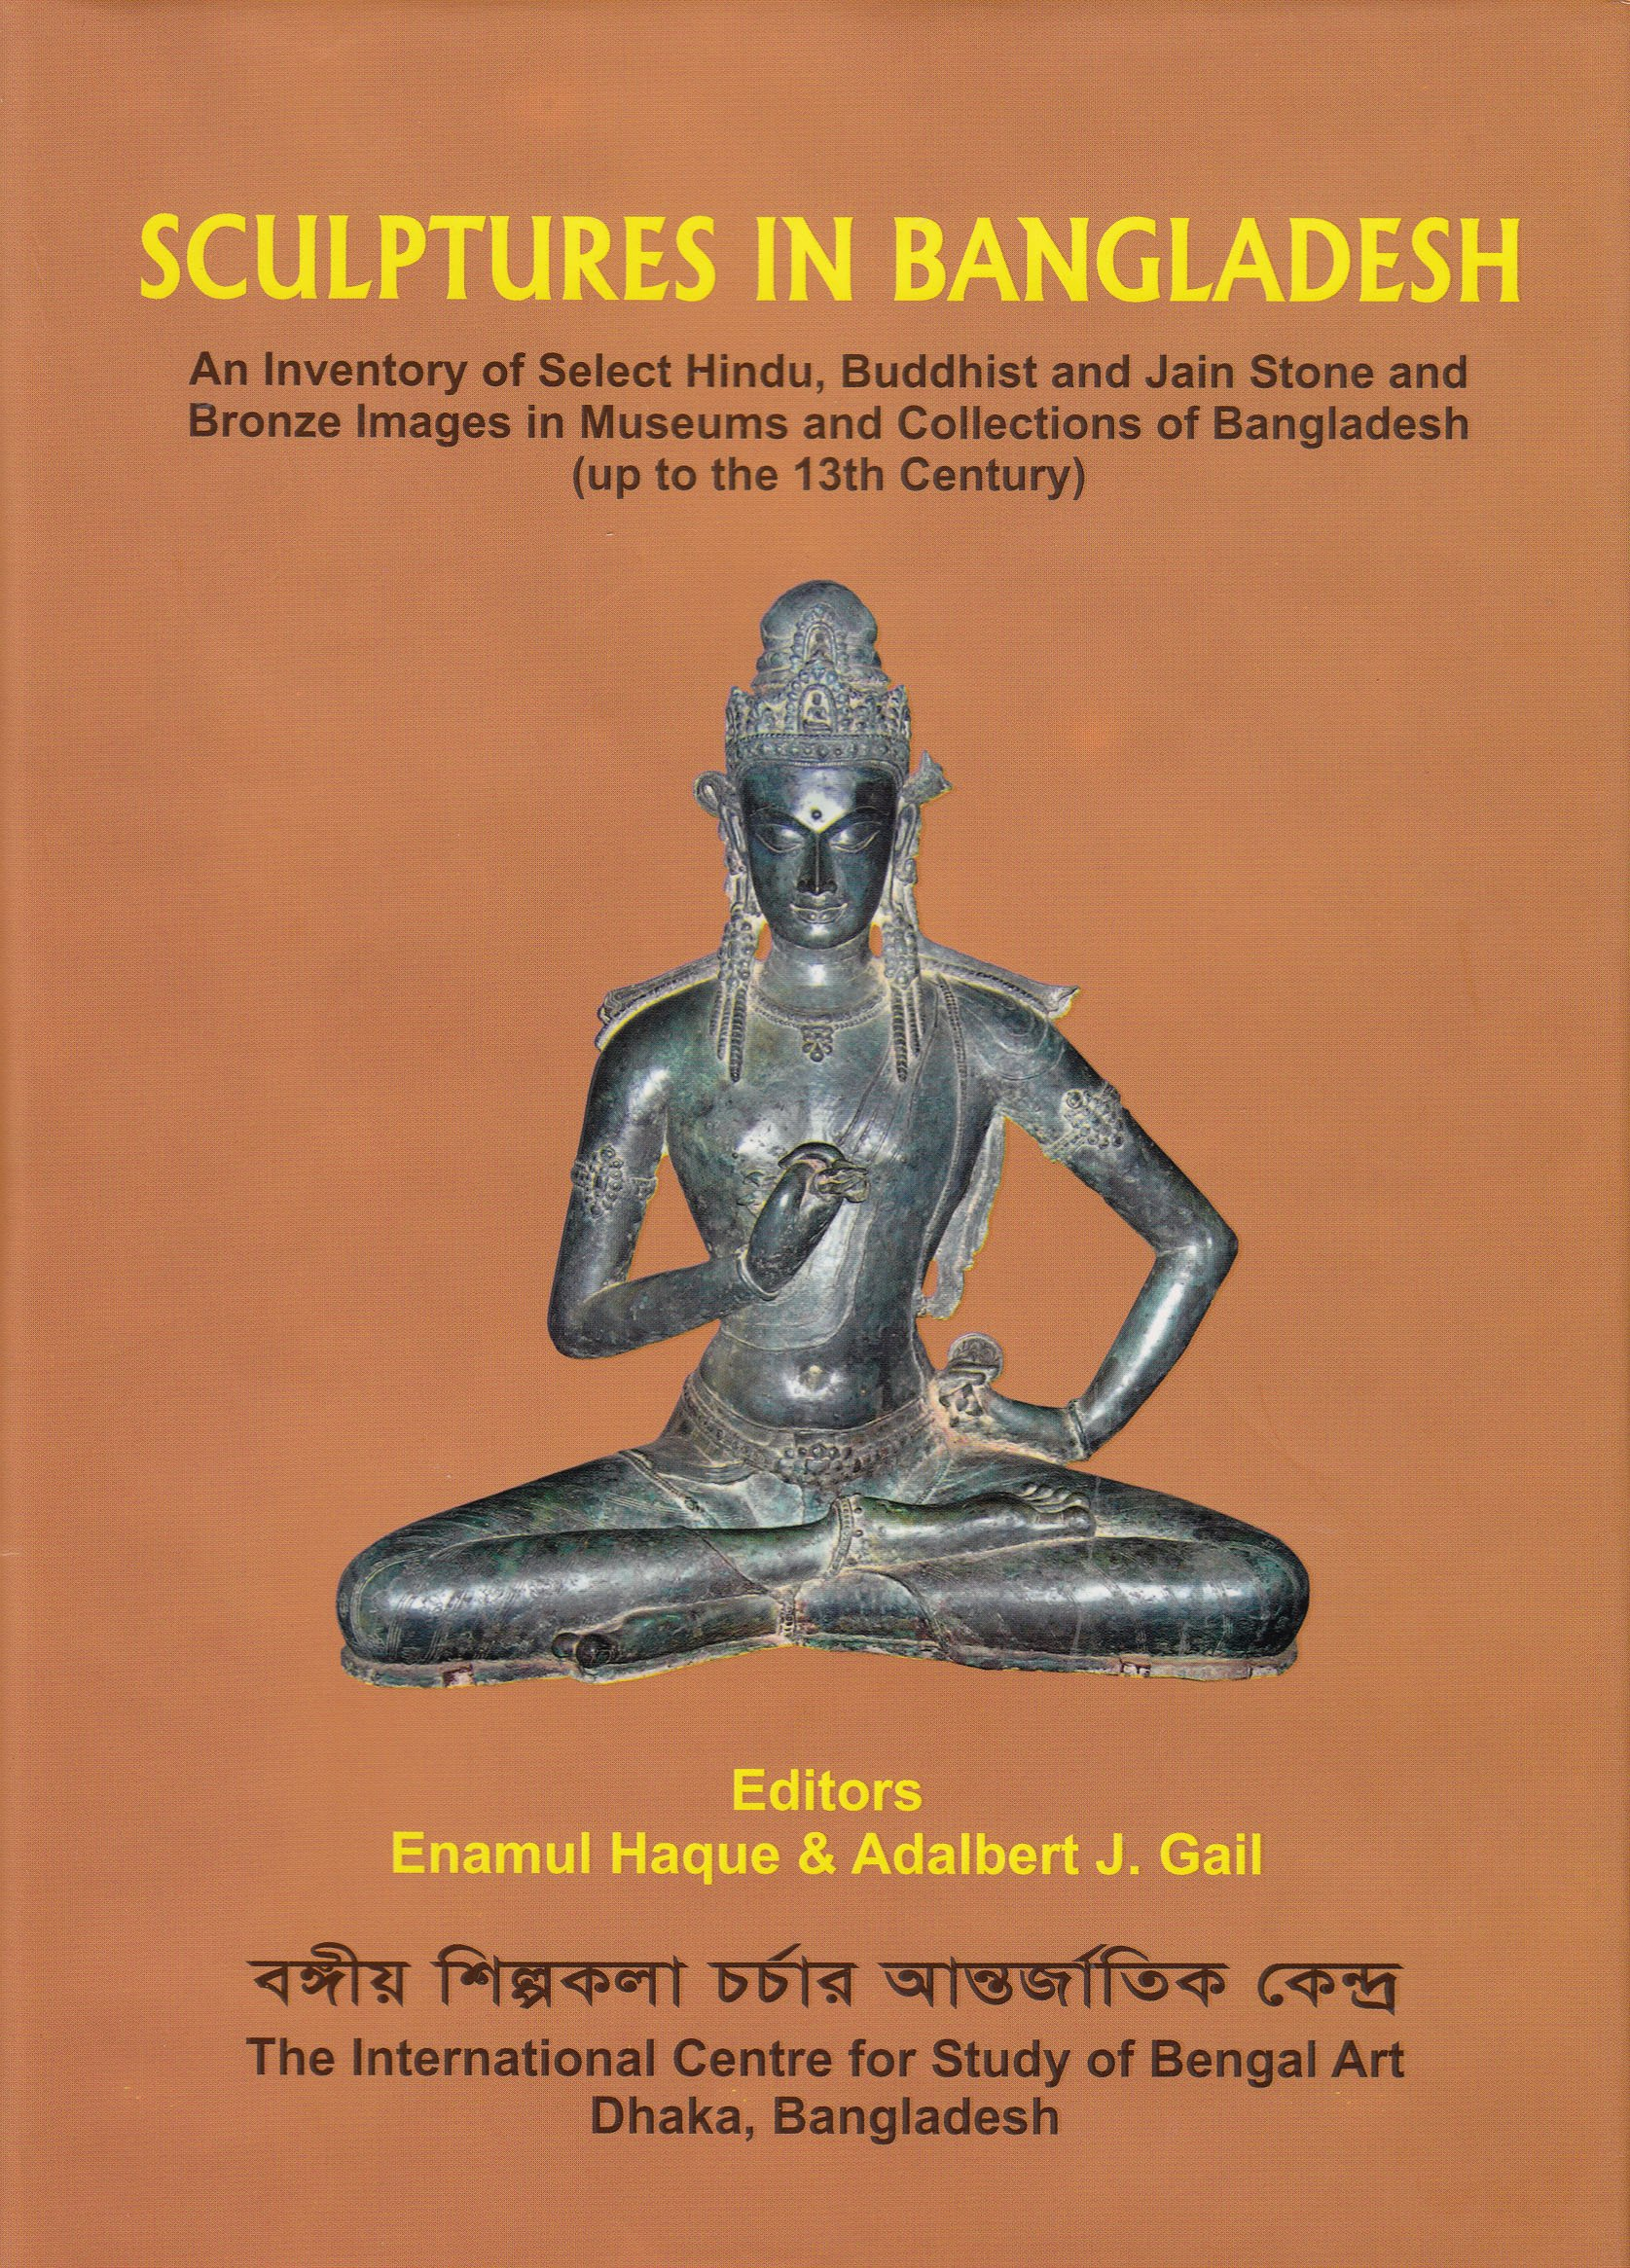 Sculpture in Bangladesh an Inventory of Select Hindu, Buddhist and Jain Stone and Bronze Images in Museums and Collections of Bangladesh (up to the 13th Century) (Studies in Bengal Art Series, NO. 8) PDF